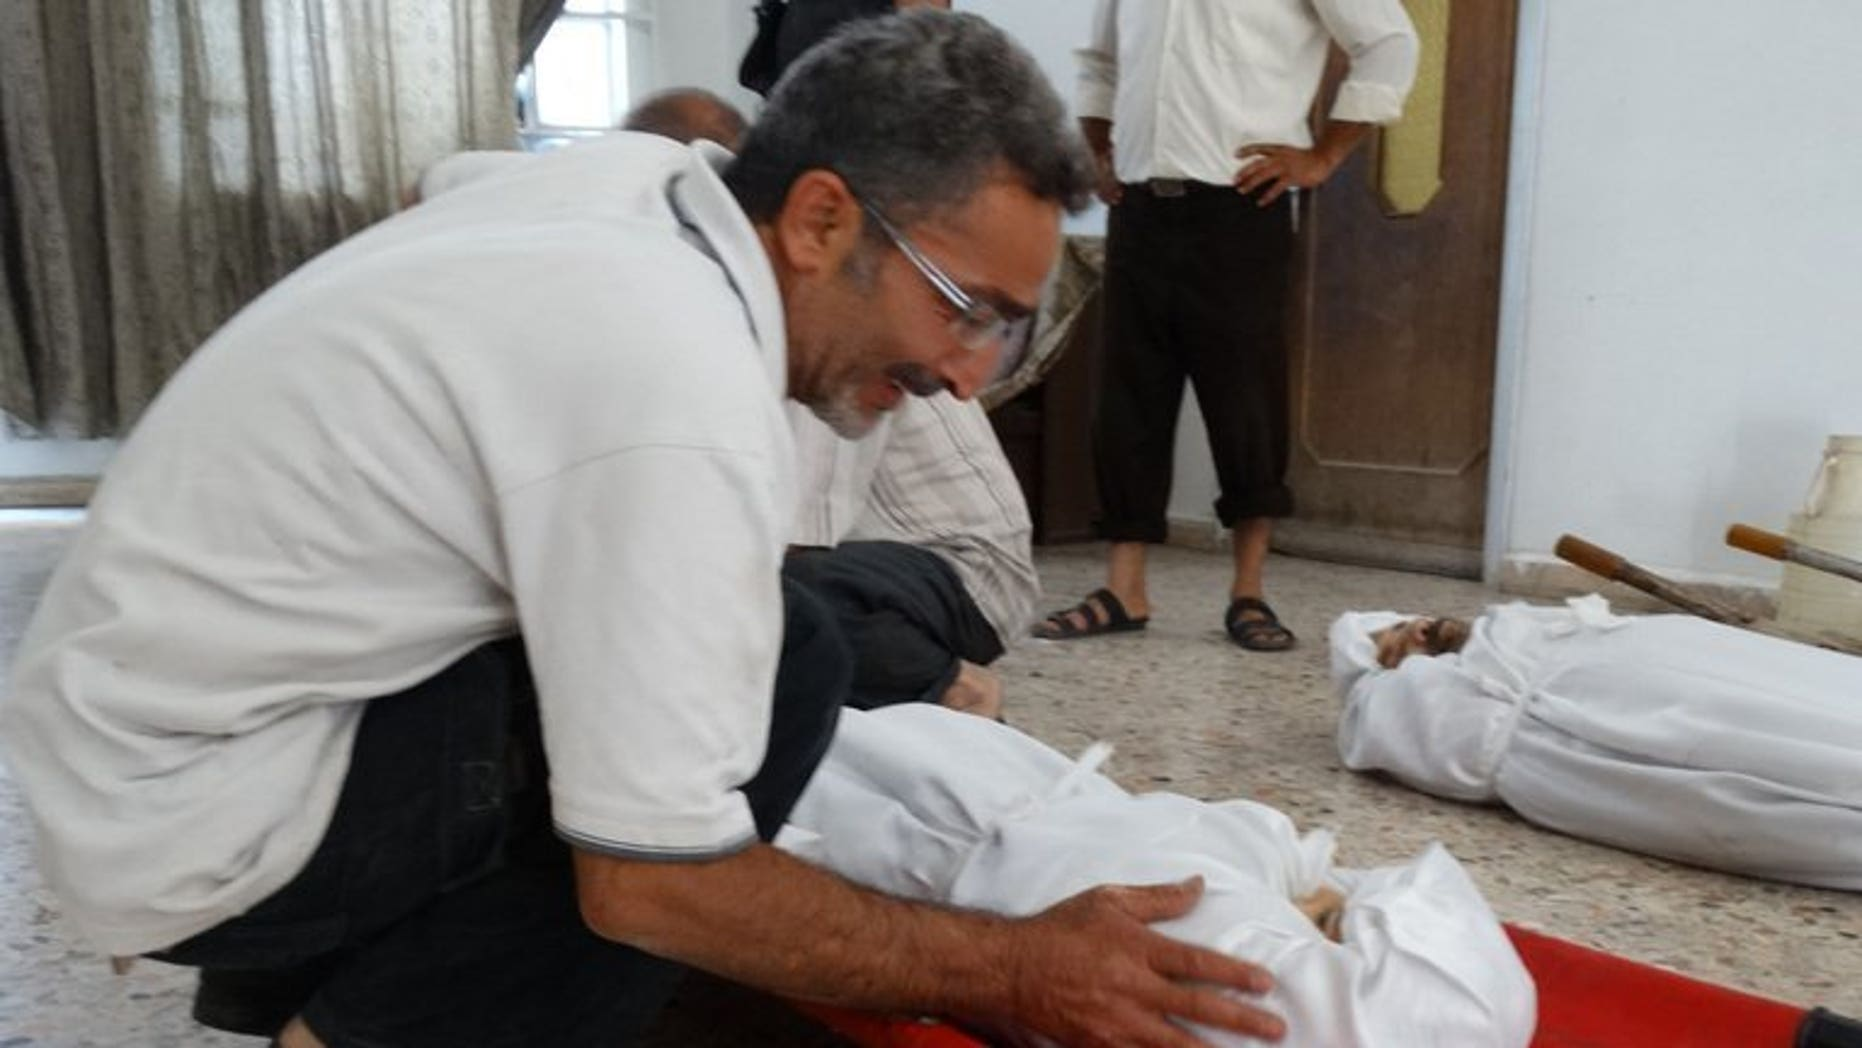 """An image released by the Syrian opposition's Shaam News Network on August 23, 2013, shows a relative weeping over the body of an infant killed in an alleged toxic gas attack. Three Syrian hospitals have received around 3,600 patients displaying """"neurotoxic symptoms"""", 355 of whom have died, Doctors without Borders (MSF) say."""